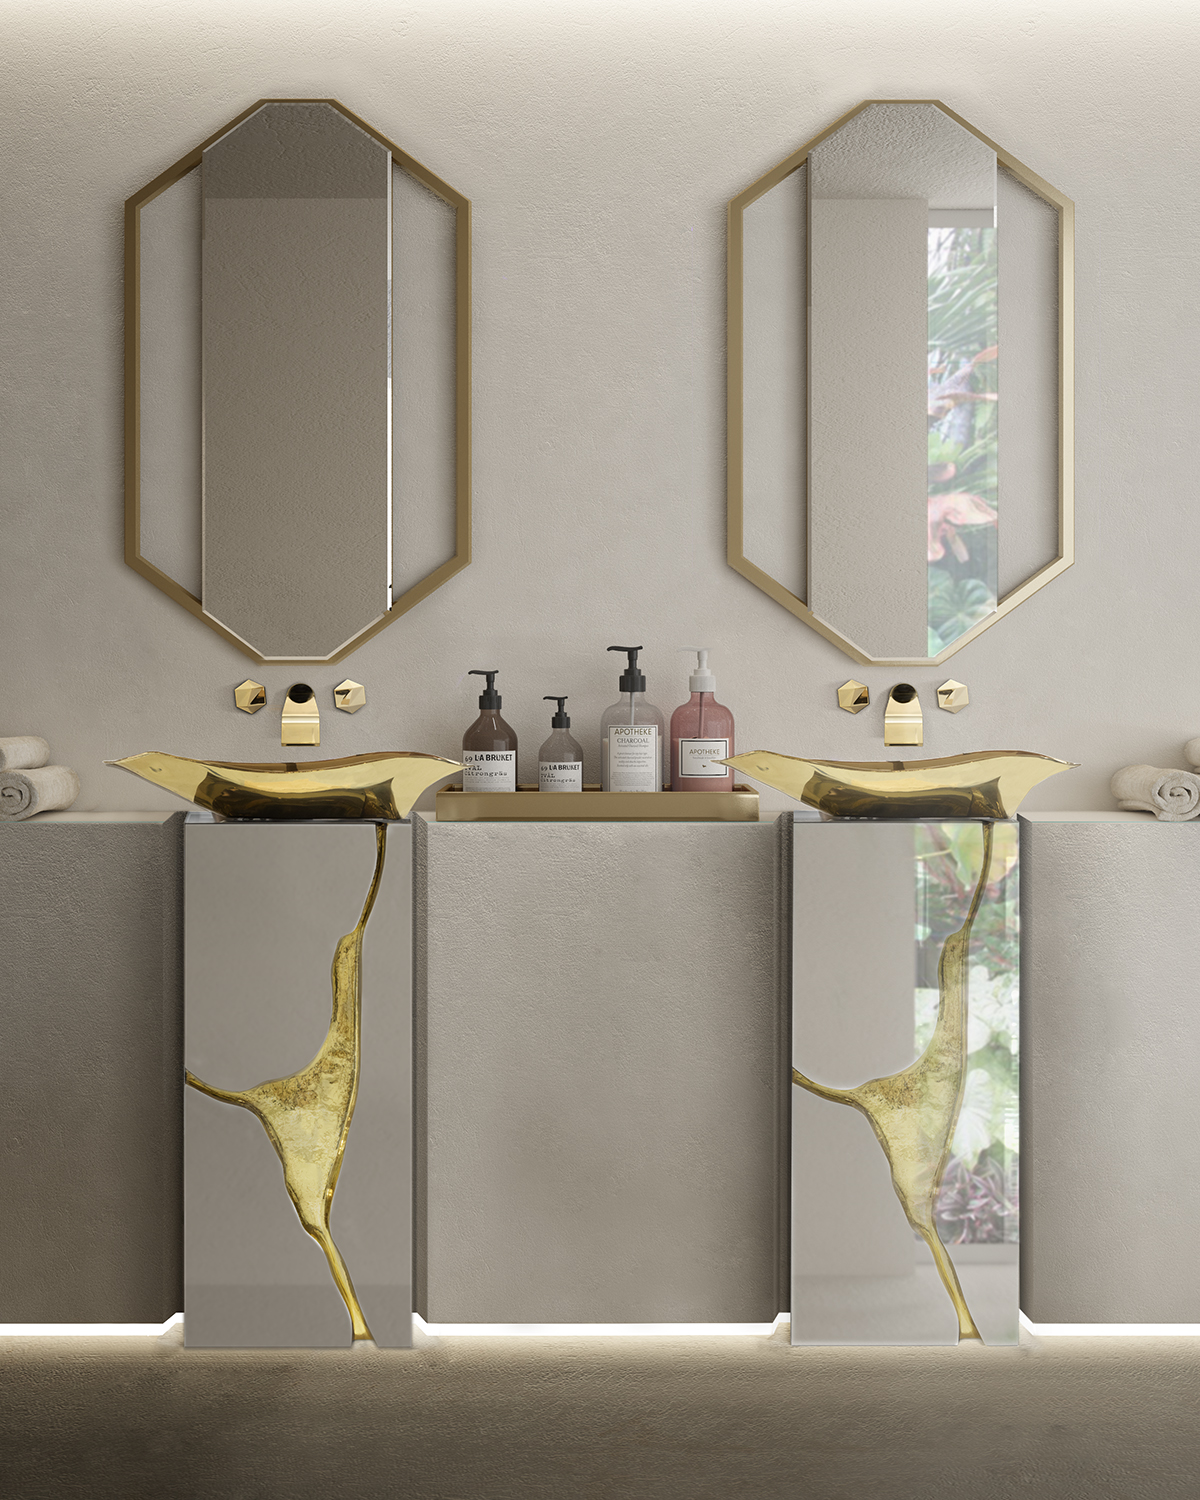 Decor Ideas, bathroom, bathroom decor, maison valentina, freestanding, spring, spring trends,   3 Amazing Decor Ideas to Make your Bathroom Bloom this Spring Spring Trends  Monochromatics